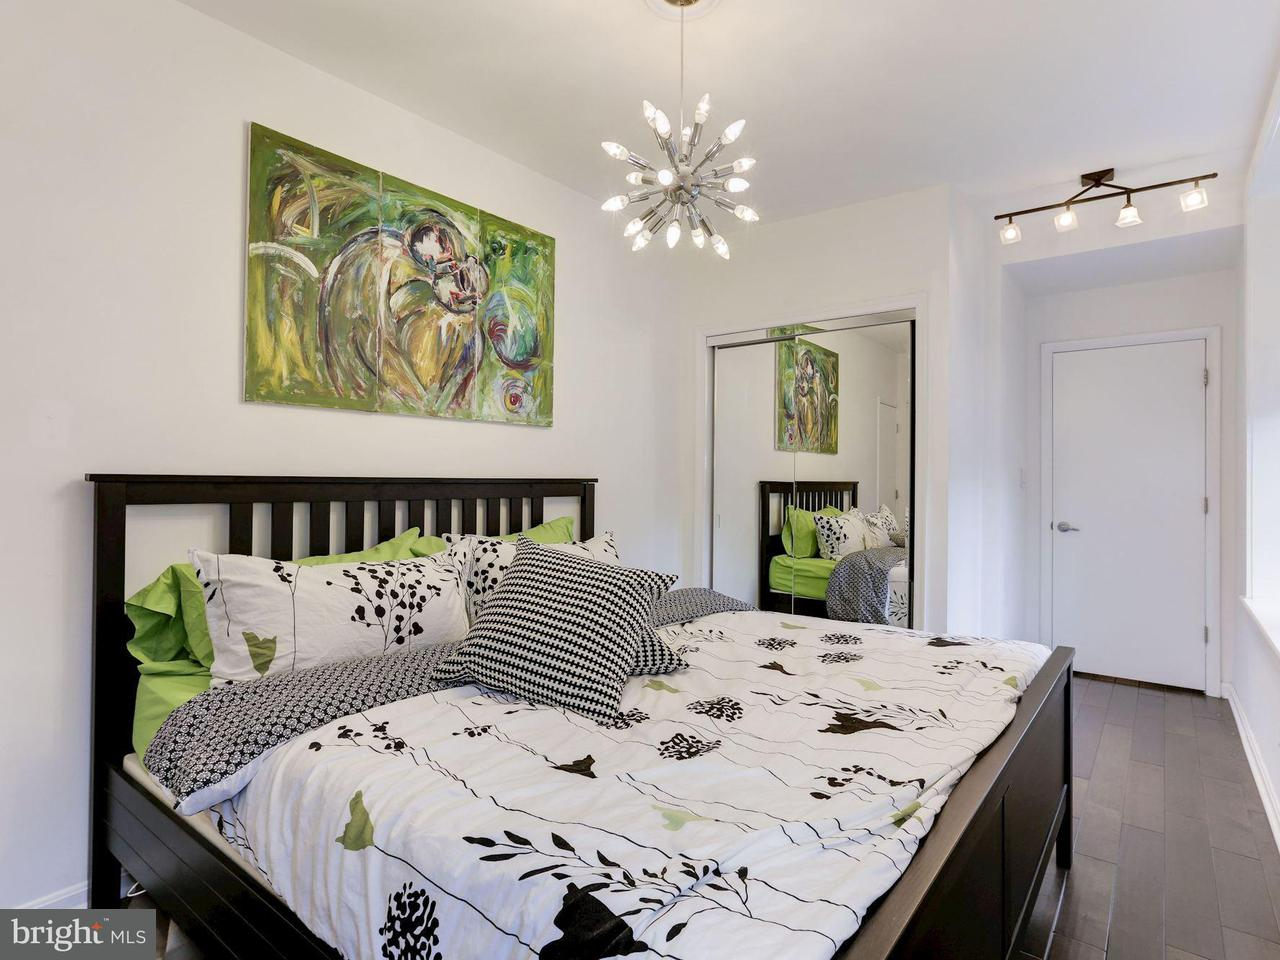 Additional photo for property listing at 1317 Rhode Island Ave Nw #101 1317 Rhode Island Ave Nw #101 Washington, District Of Columbia 20005 United States